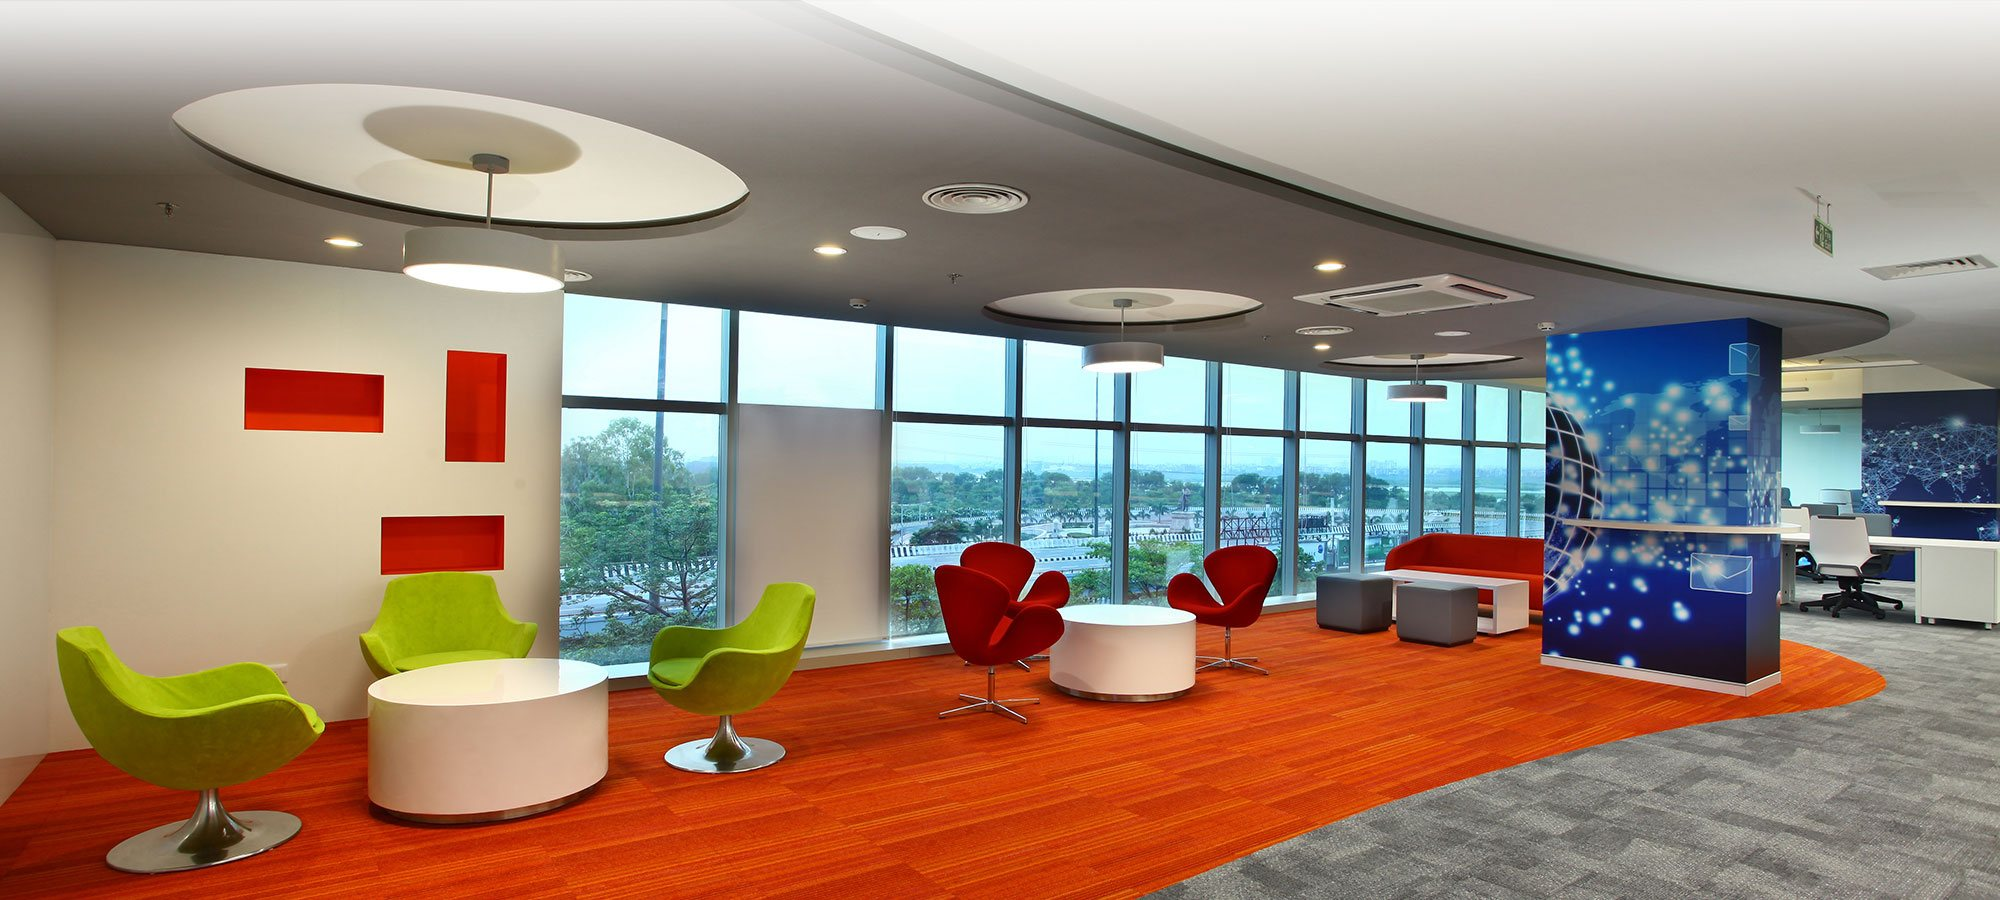 Office Interior Design Corporate Office Interior